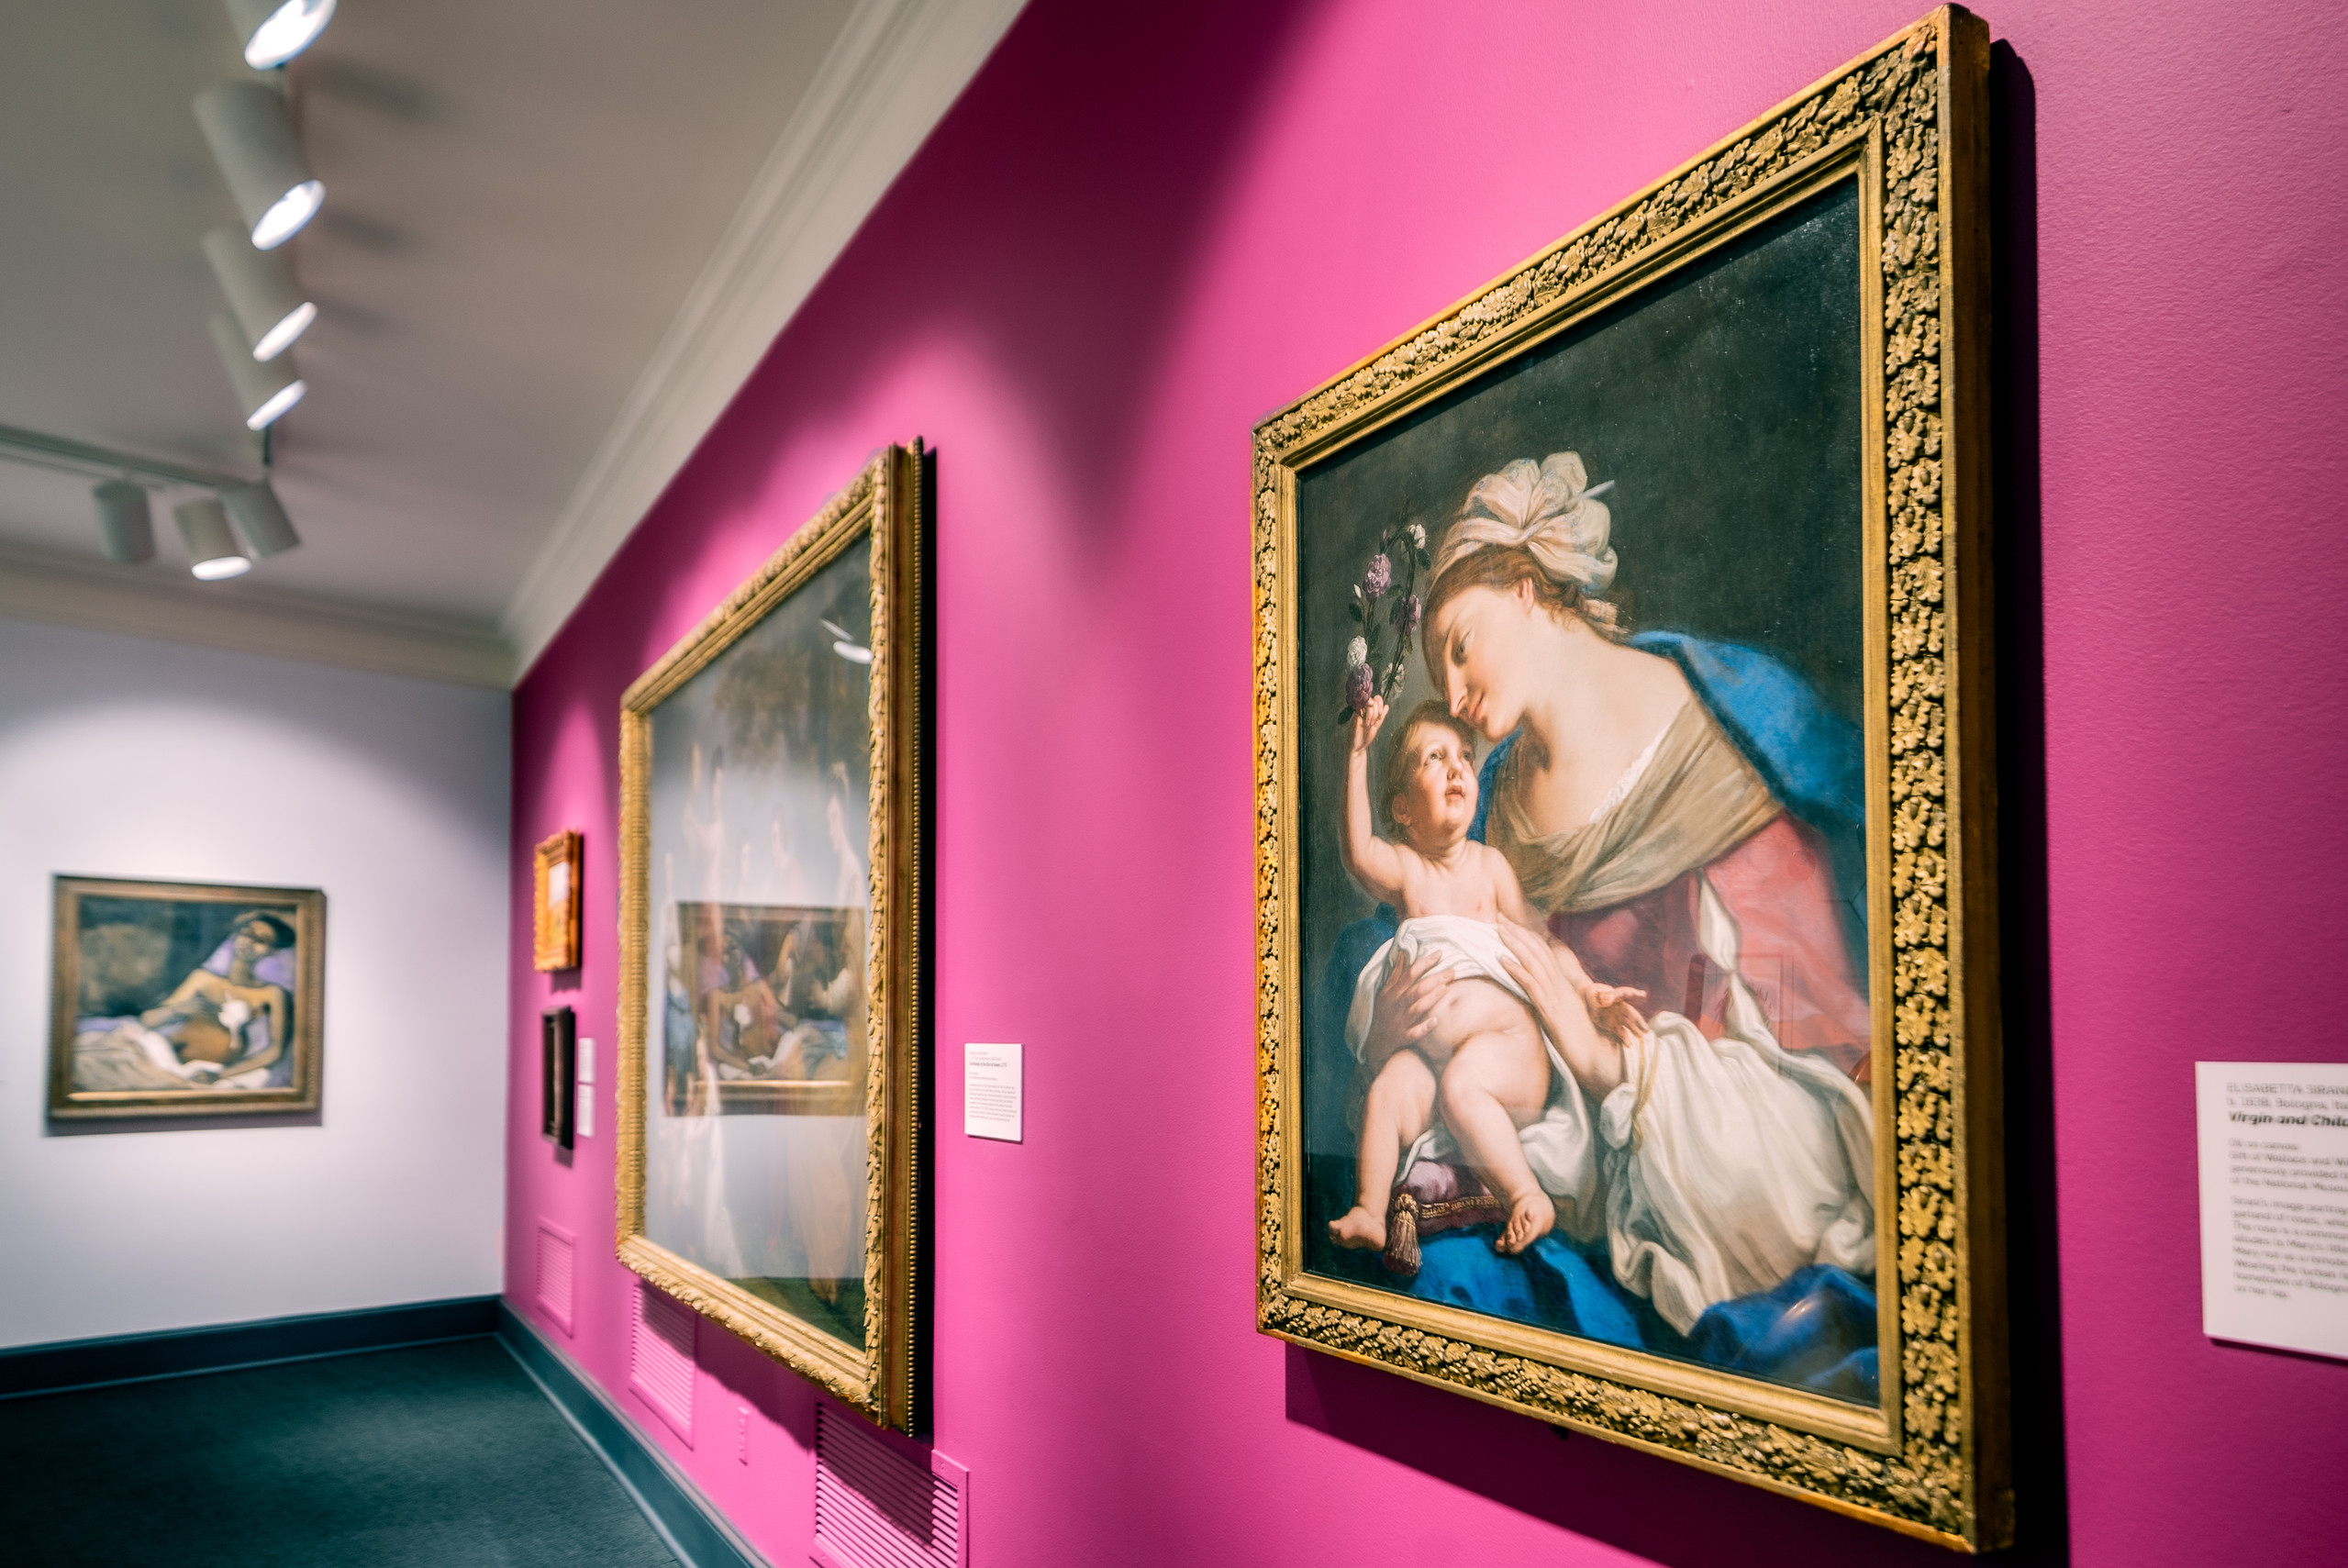 Oblique view of gallery with a Baroque painting of the Madonna and Child in a gilded frame on magenta wall at right. In the distance, three more framed works hang on the same wall. Painting on the adjacent white wall is of a reclining figure with a bandage on chest.